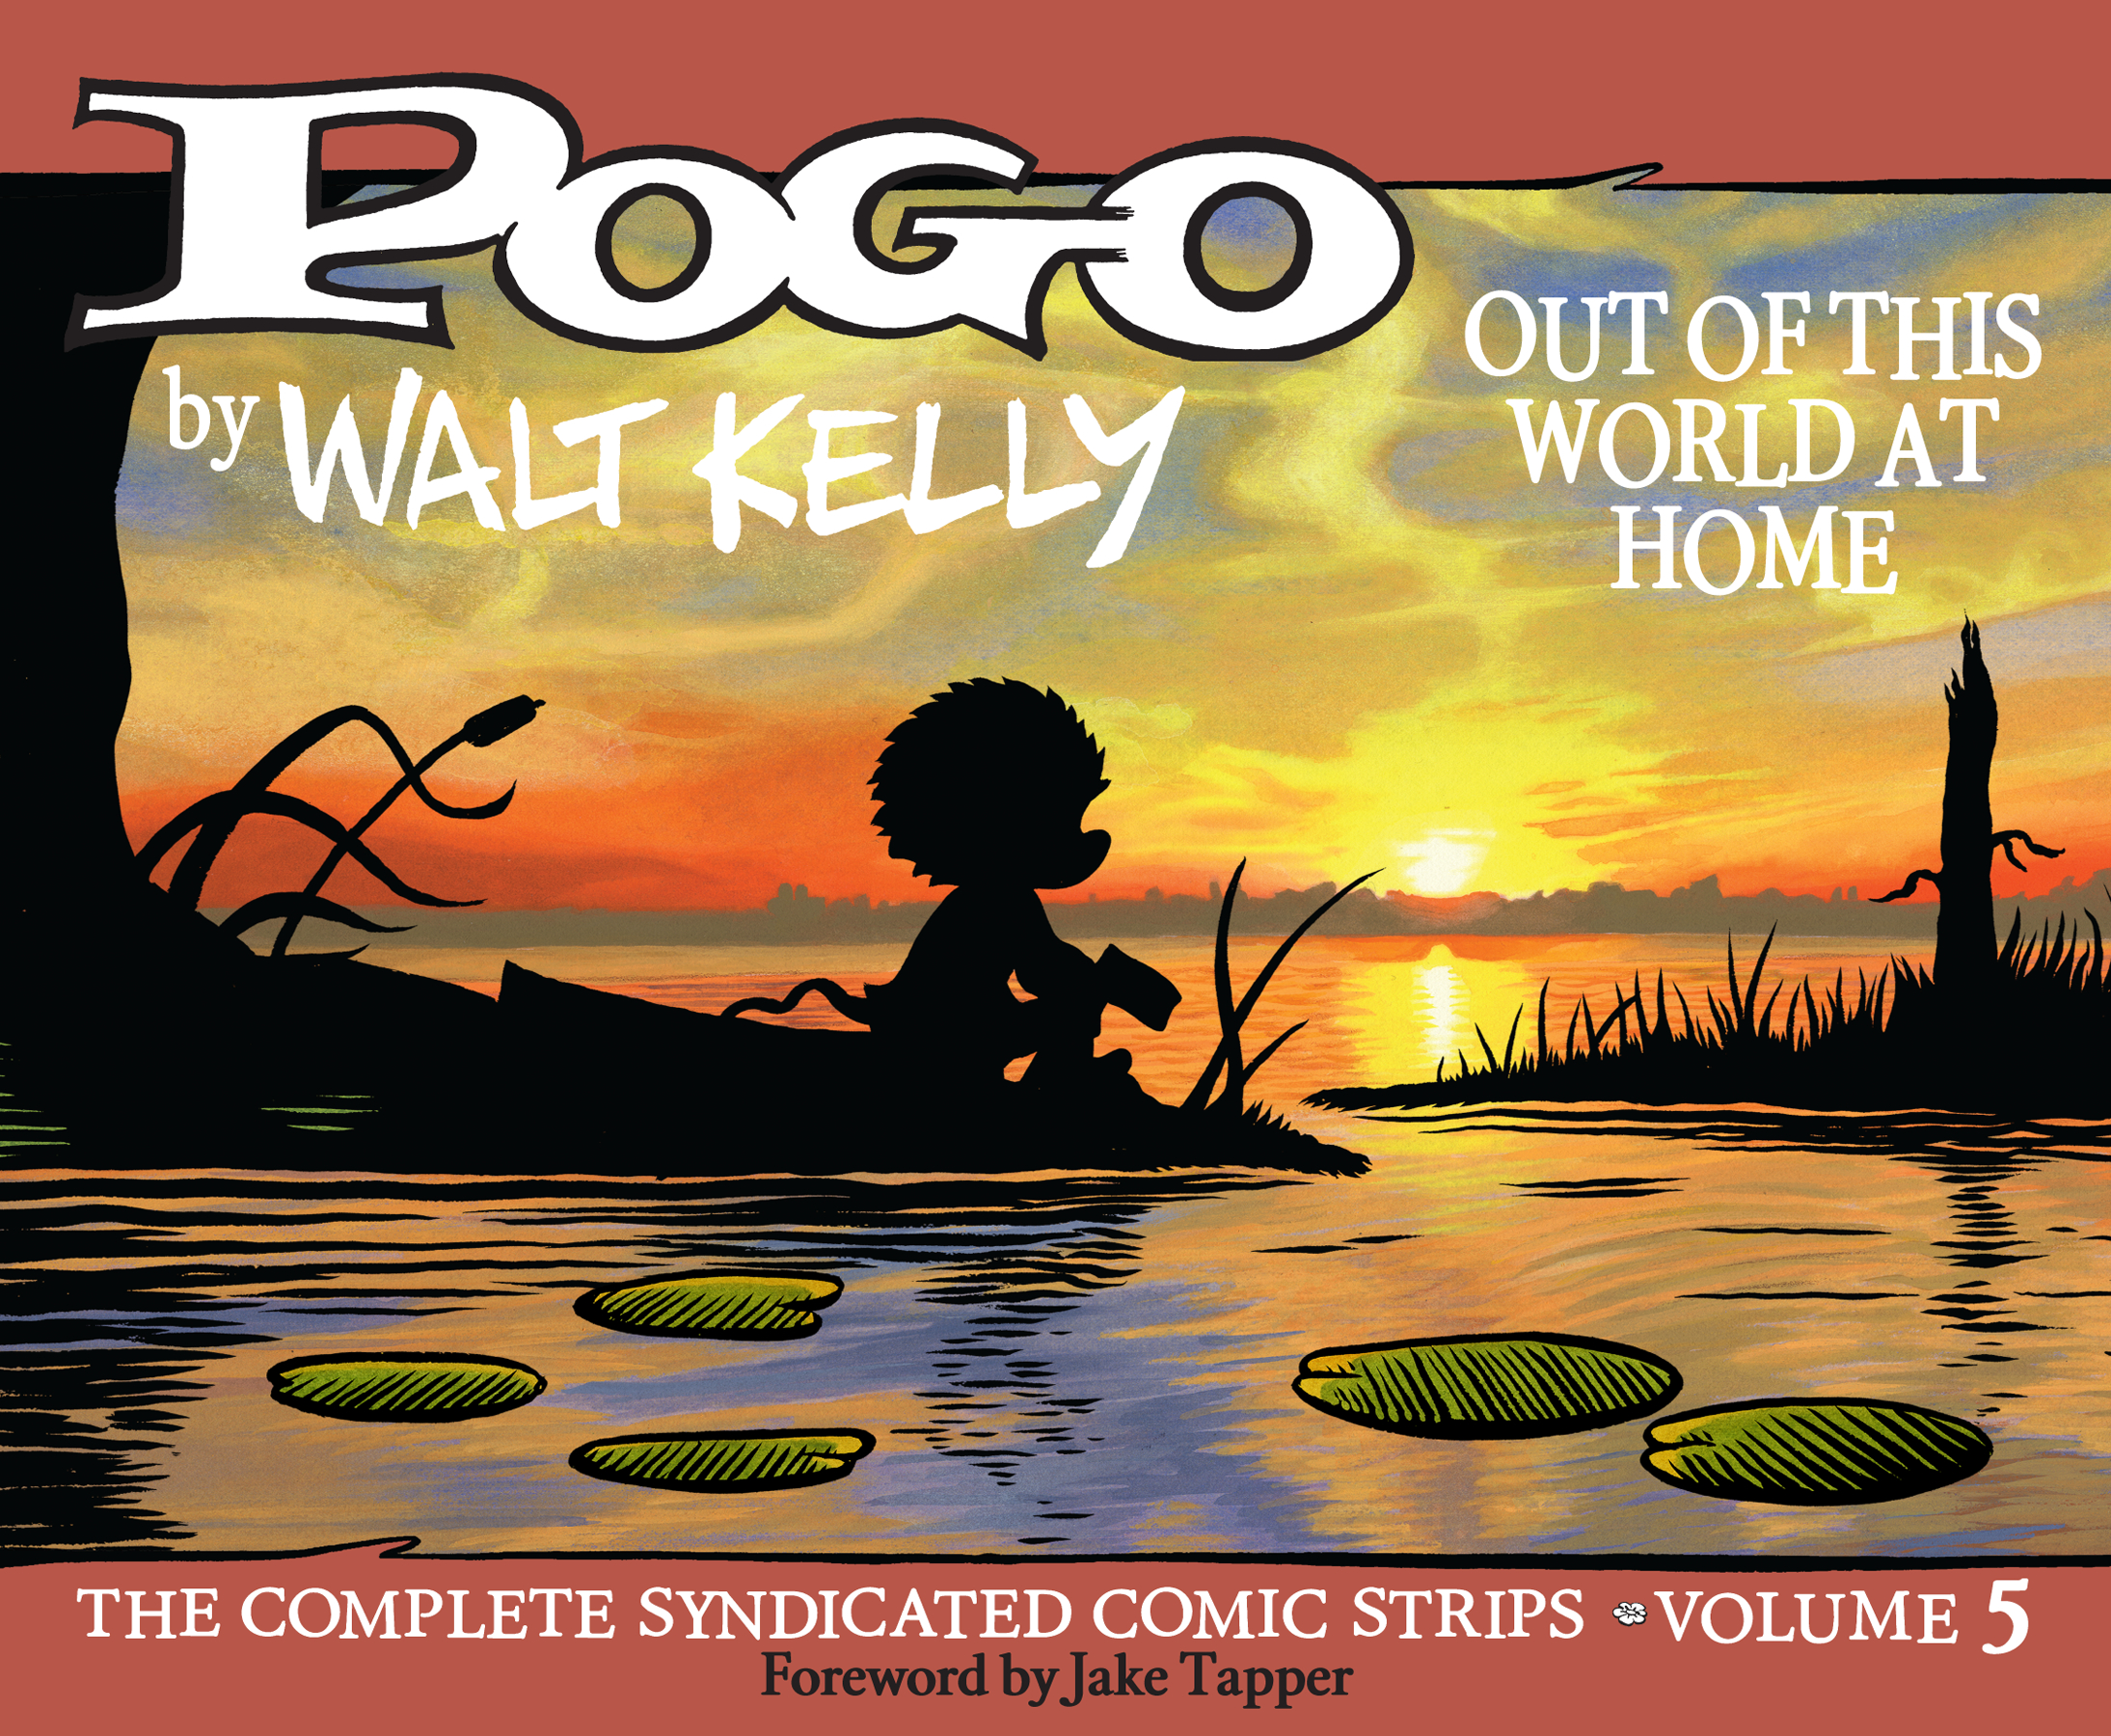 POGO COMP SYNDICATED STRIPS HC VOL 05 OUT WORLD HOME